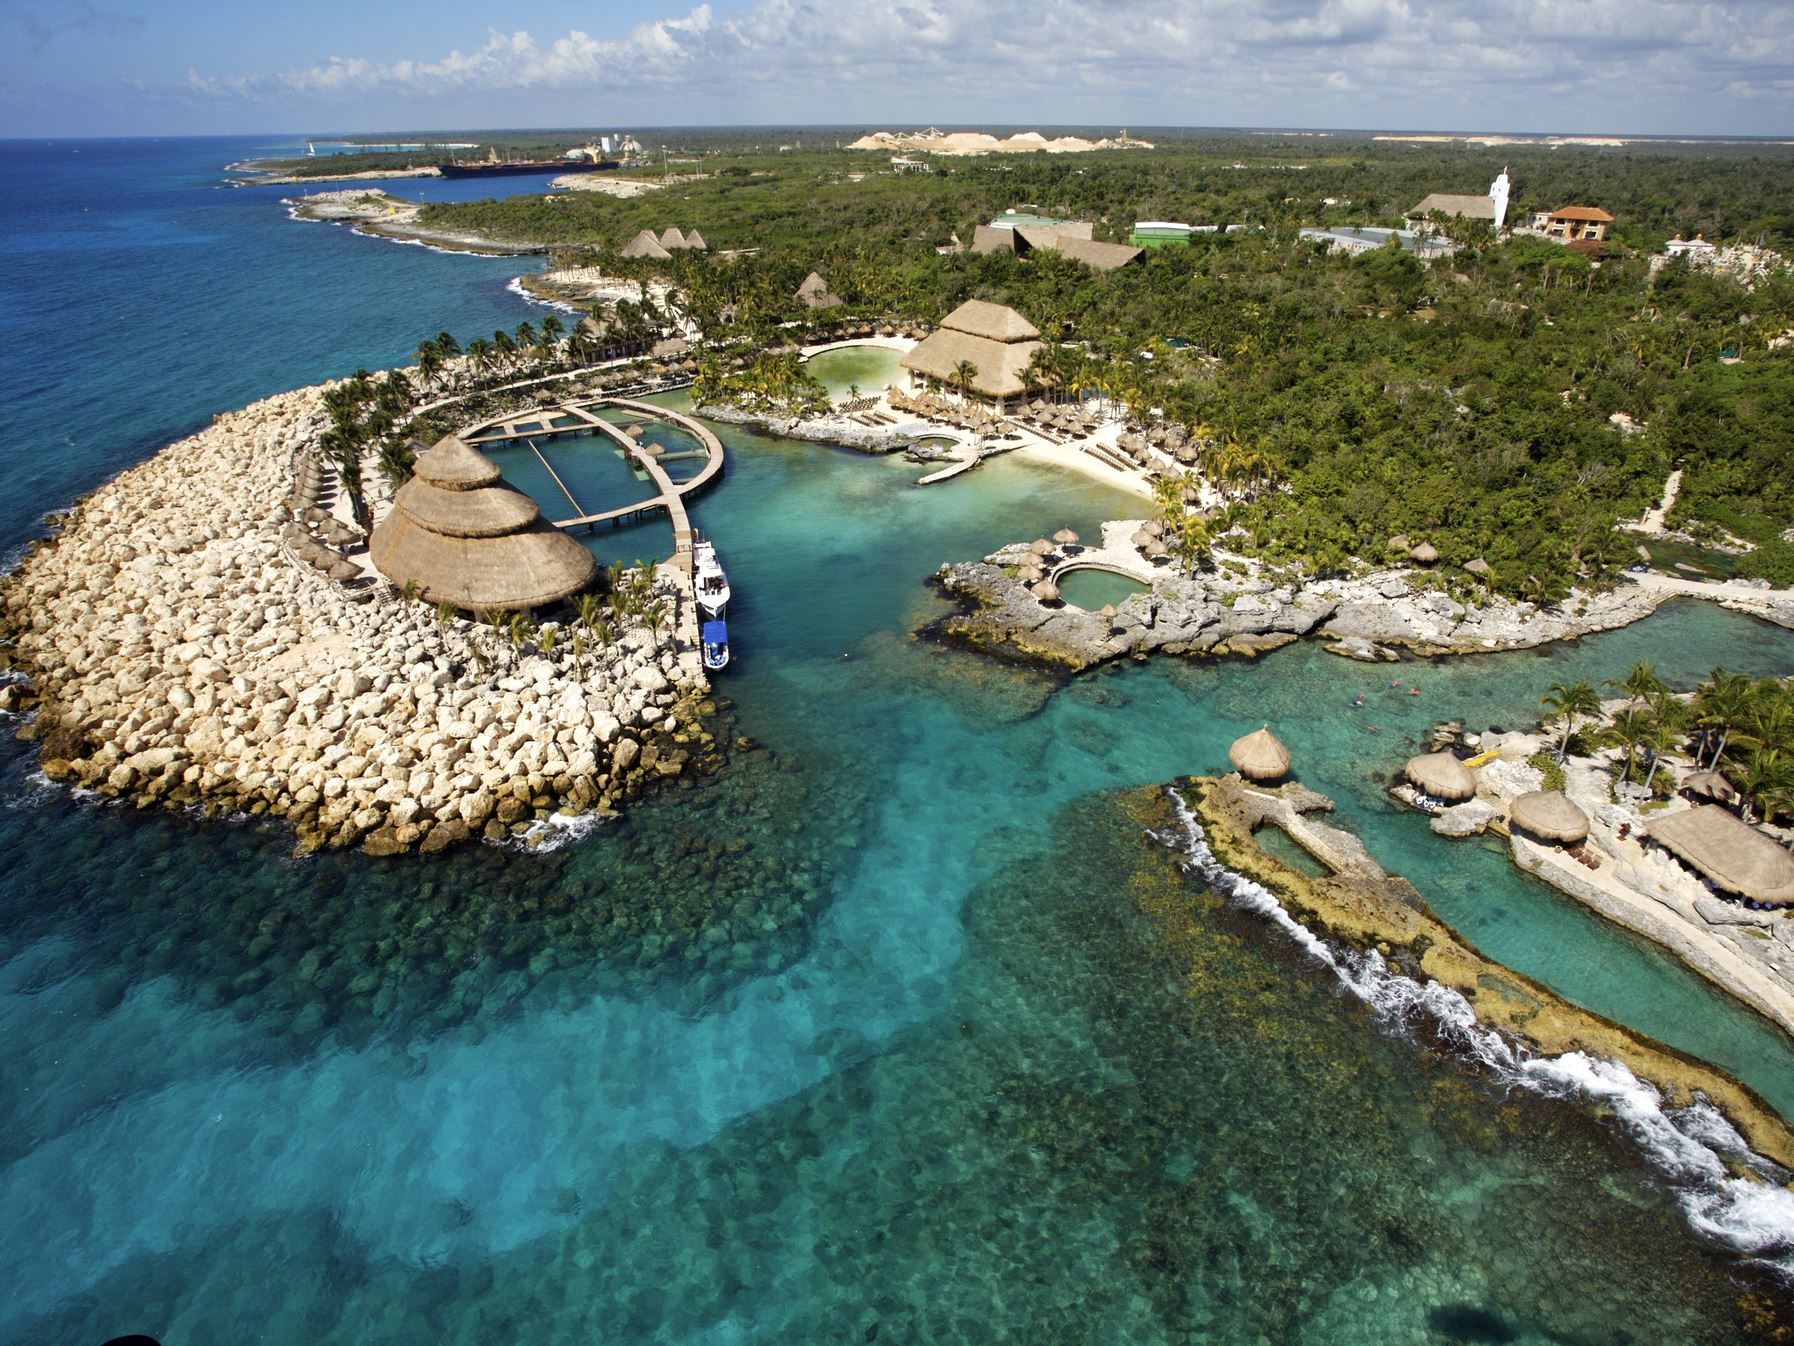 Xcaret Riviera Experience